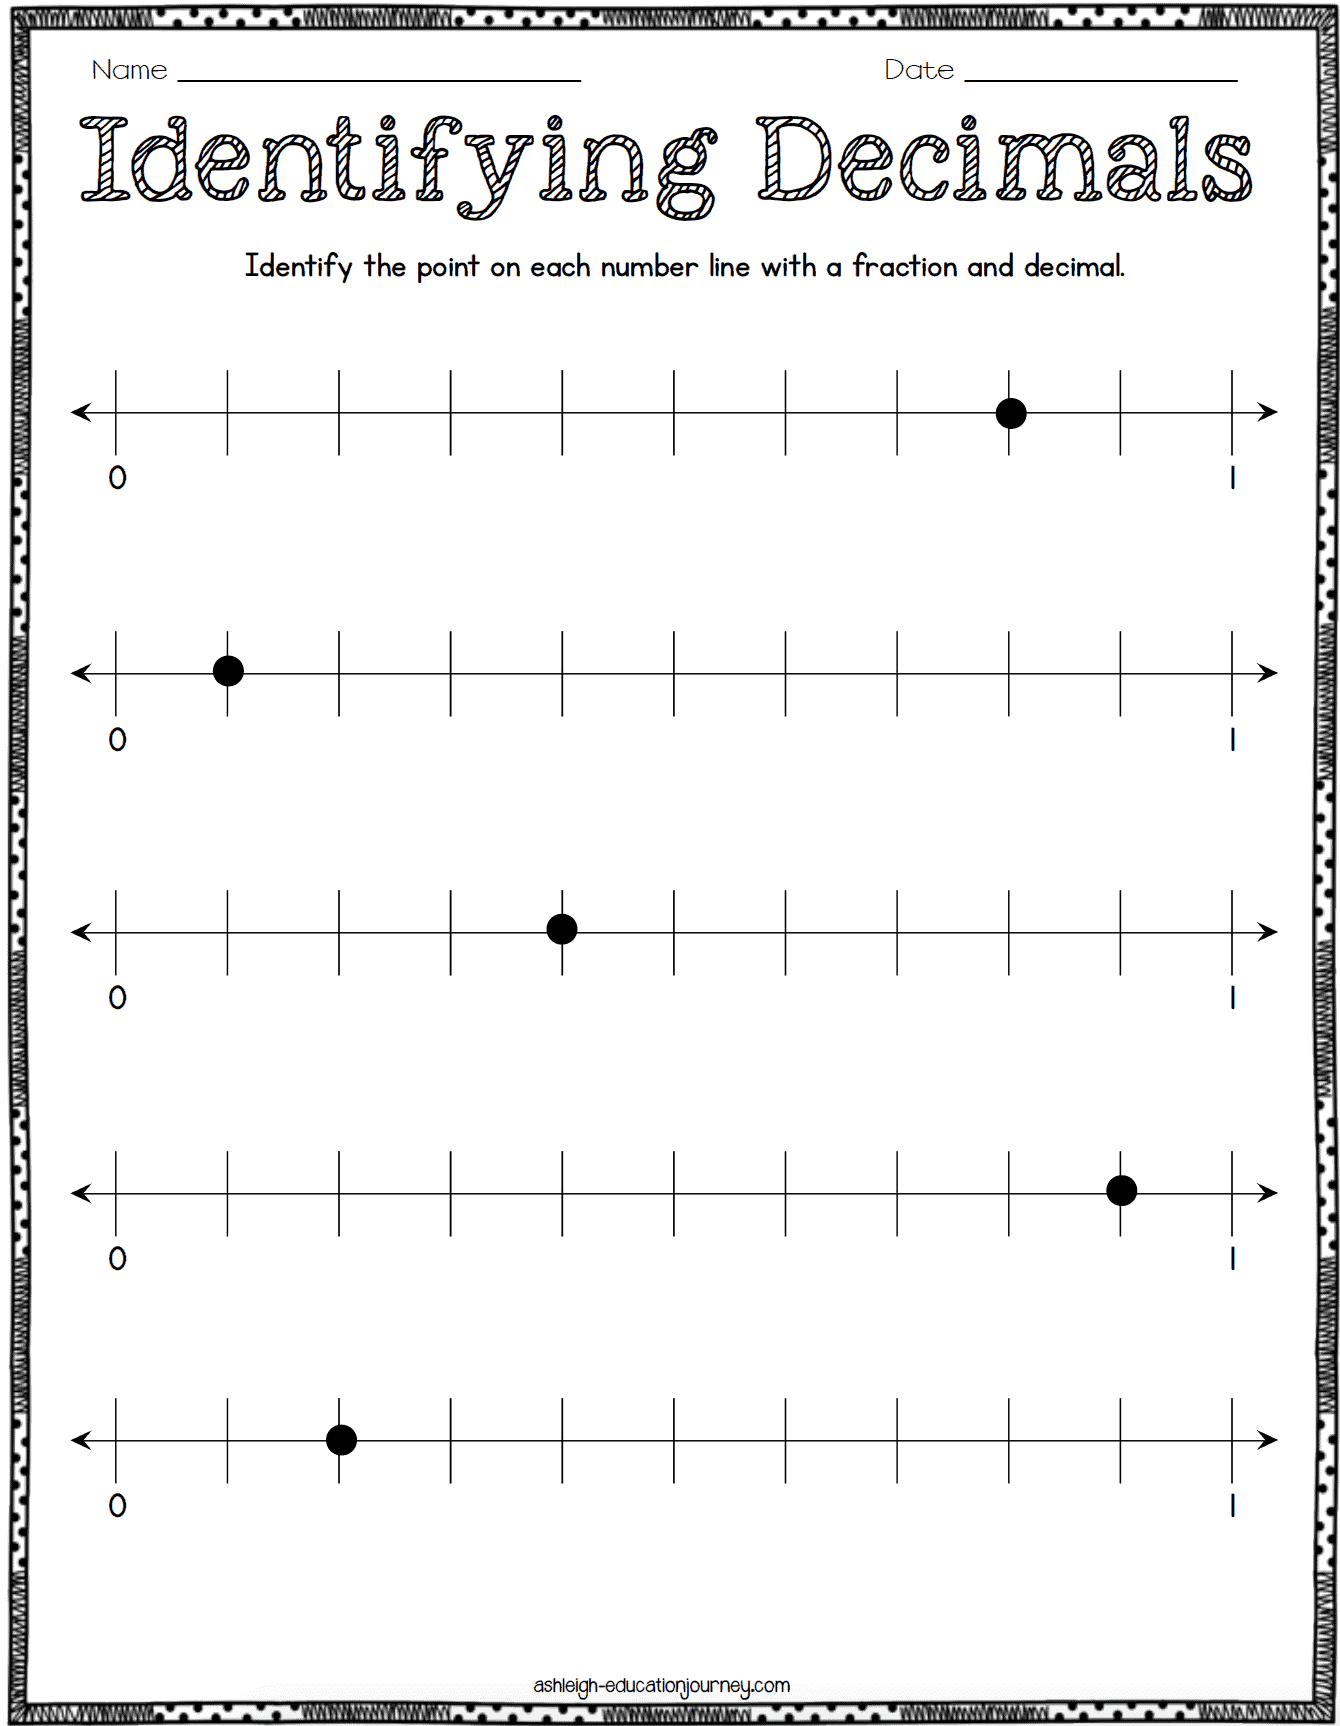 worksheet Make A Number Line introducing decimals ashleighs education journey once students have a firm understanding of i begin teaching about friendly numbers by relating to fractions